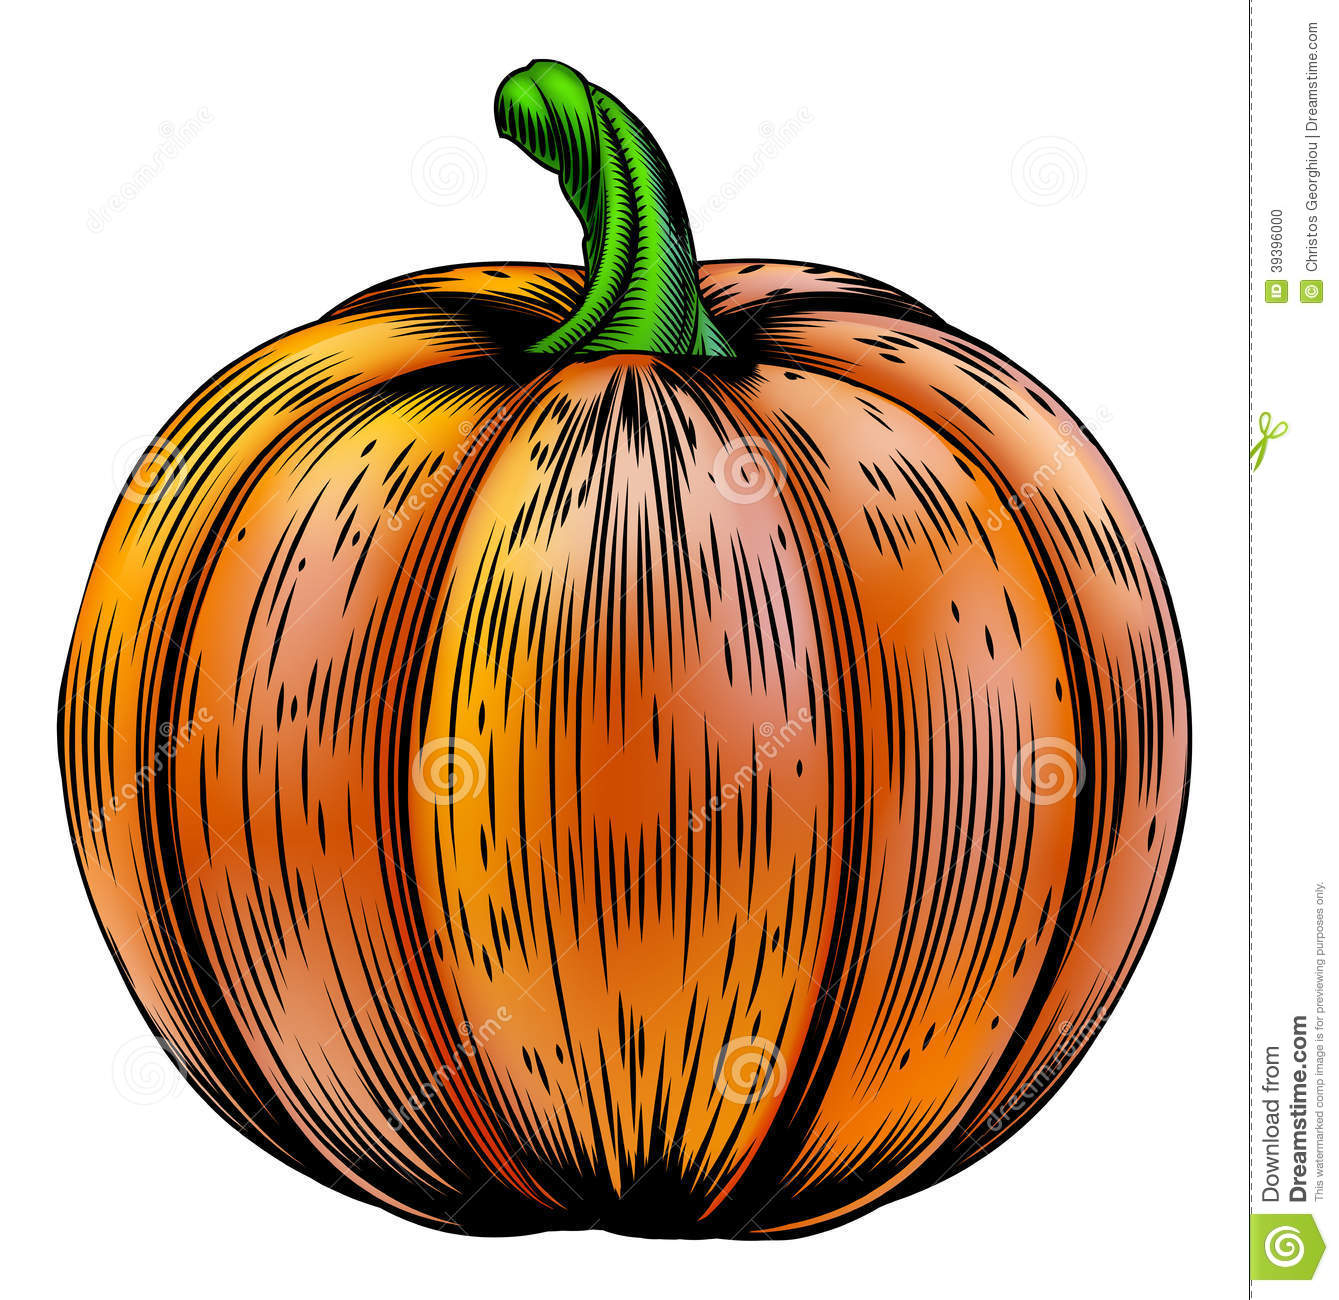 vintage pumpkin clip art - photo #10